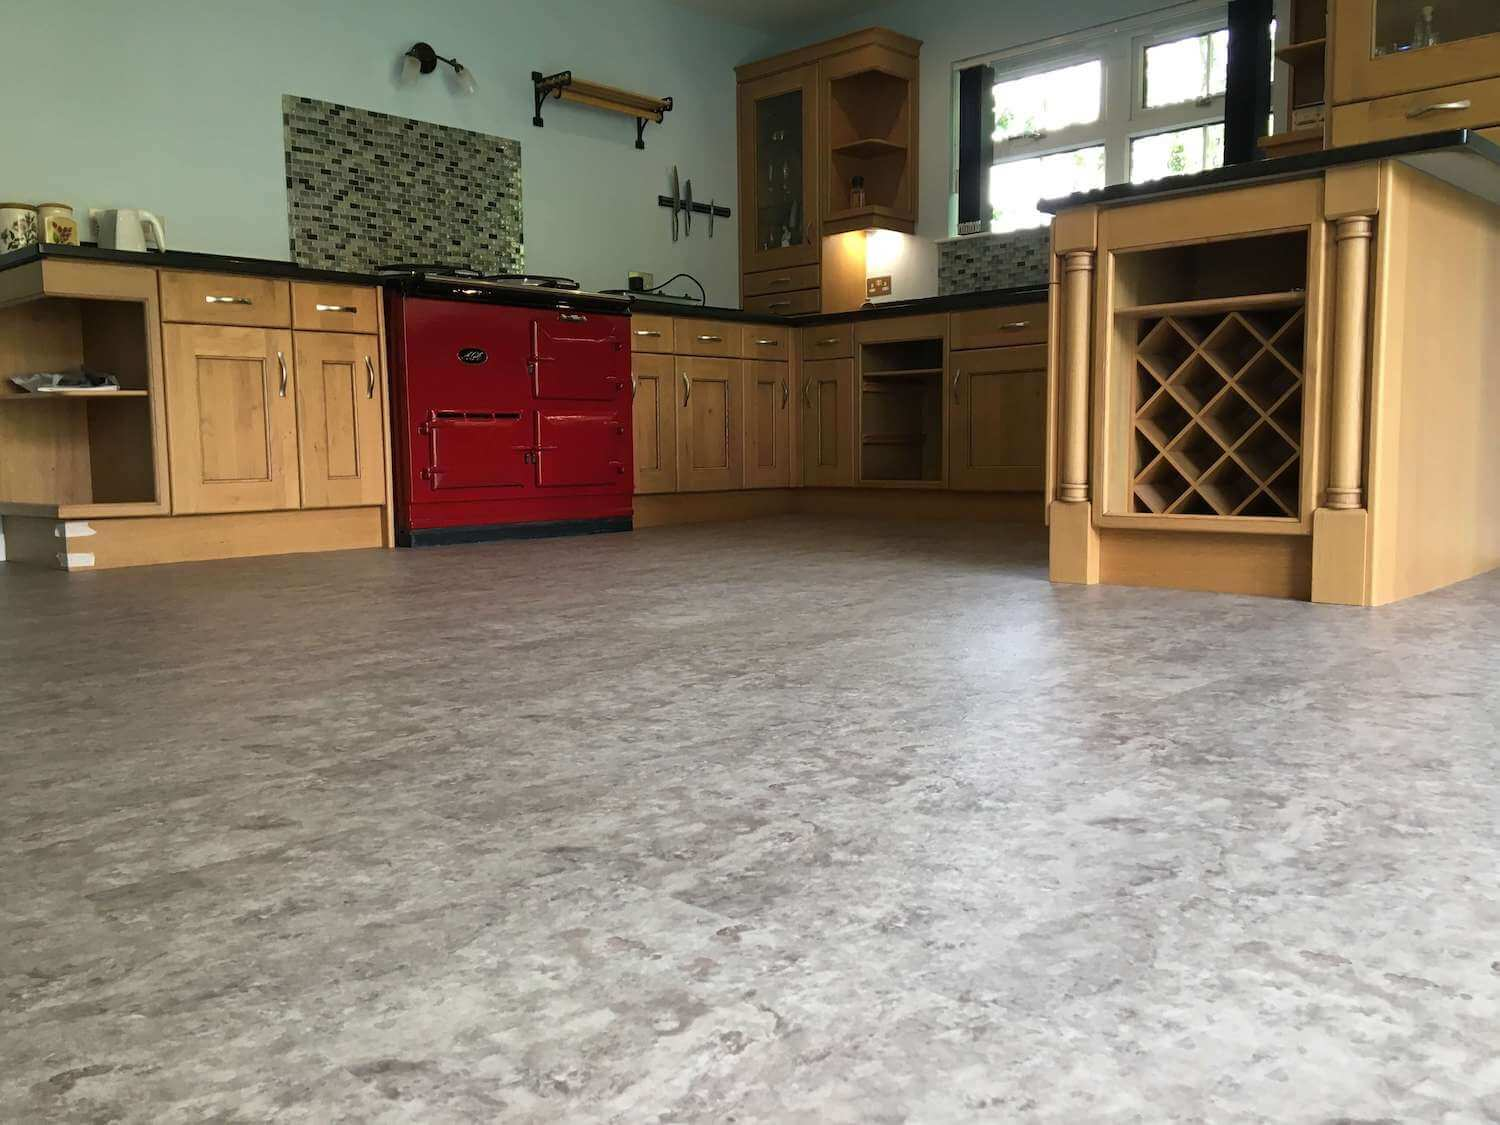 Testimonial for Solid Wood Flooring from Michael Bowra